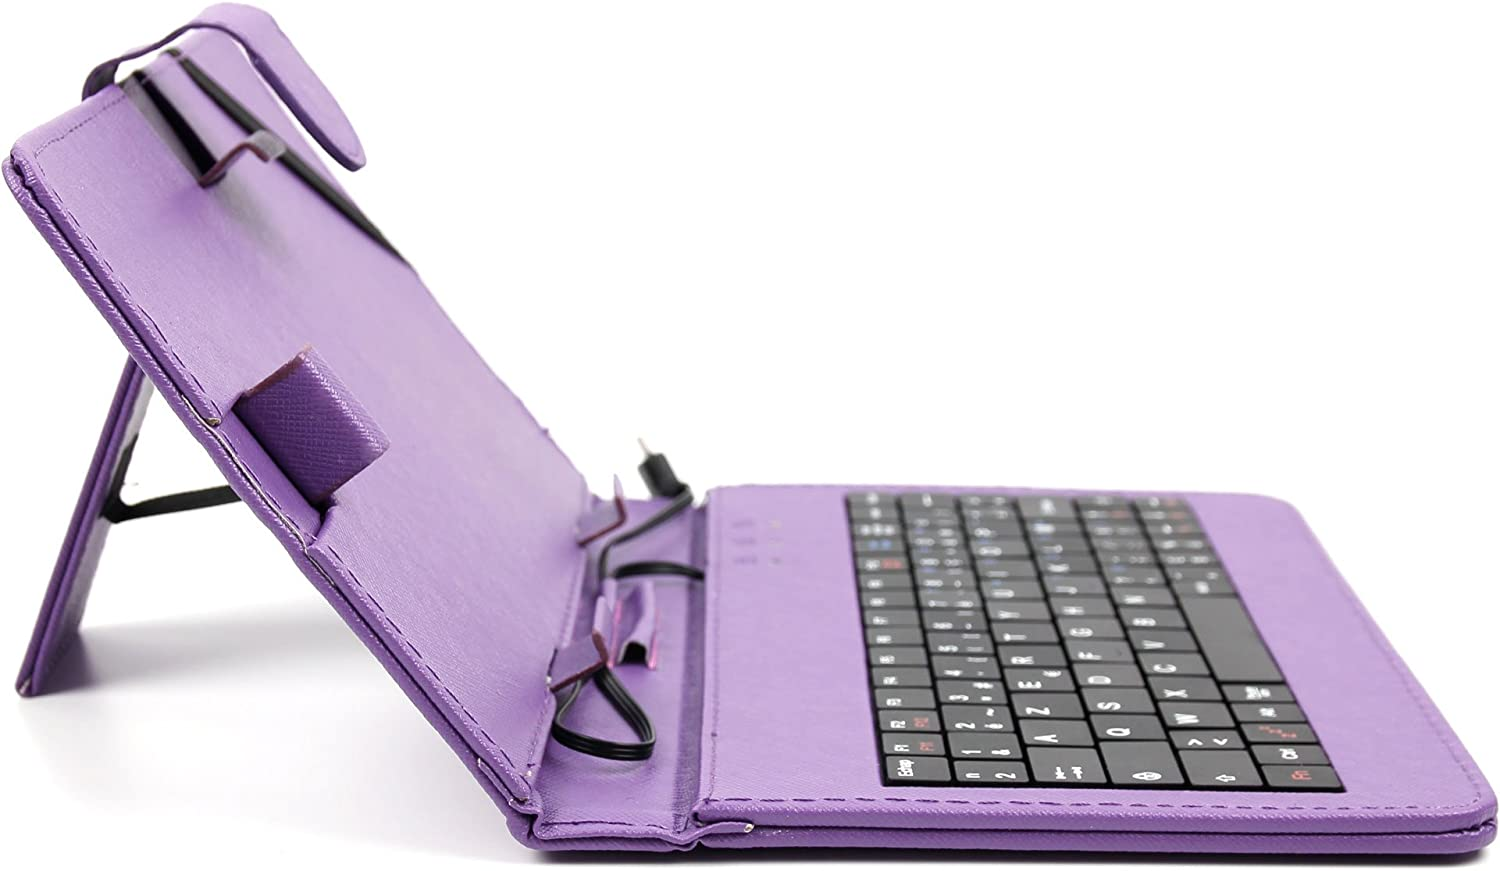 Built-in Stand /& Matching Stylus Pen with Micro USB Connection DURAGADGET Deluxe AZERTY French Keyboard Folio Case in Purple for The New BLU Studio 7.0 Tablet